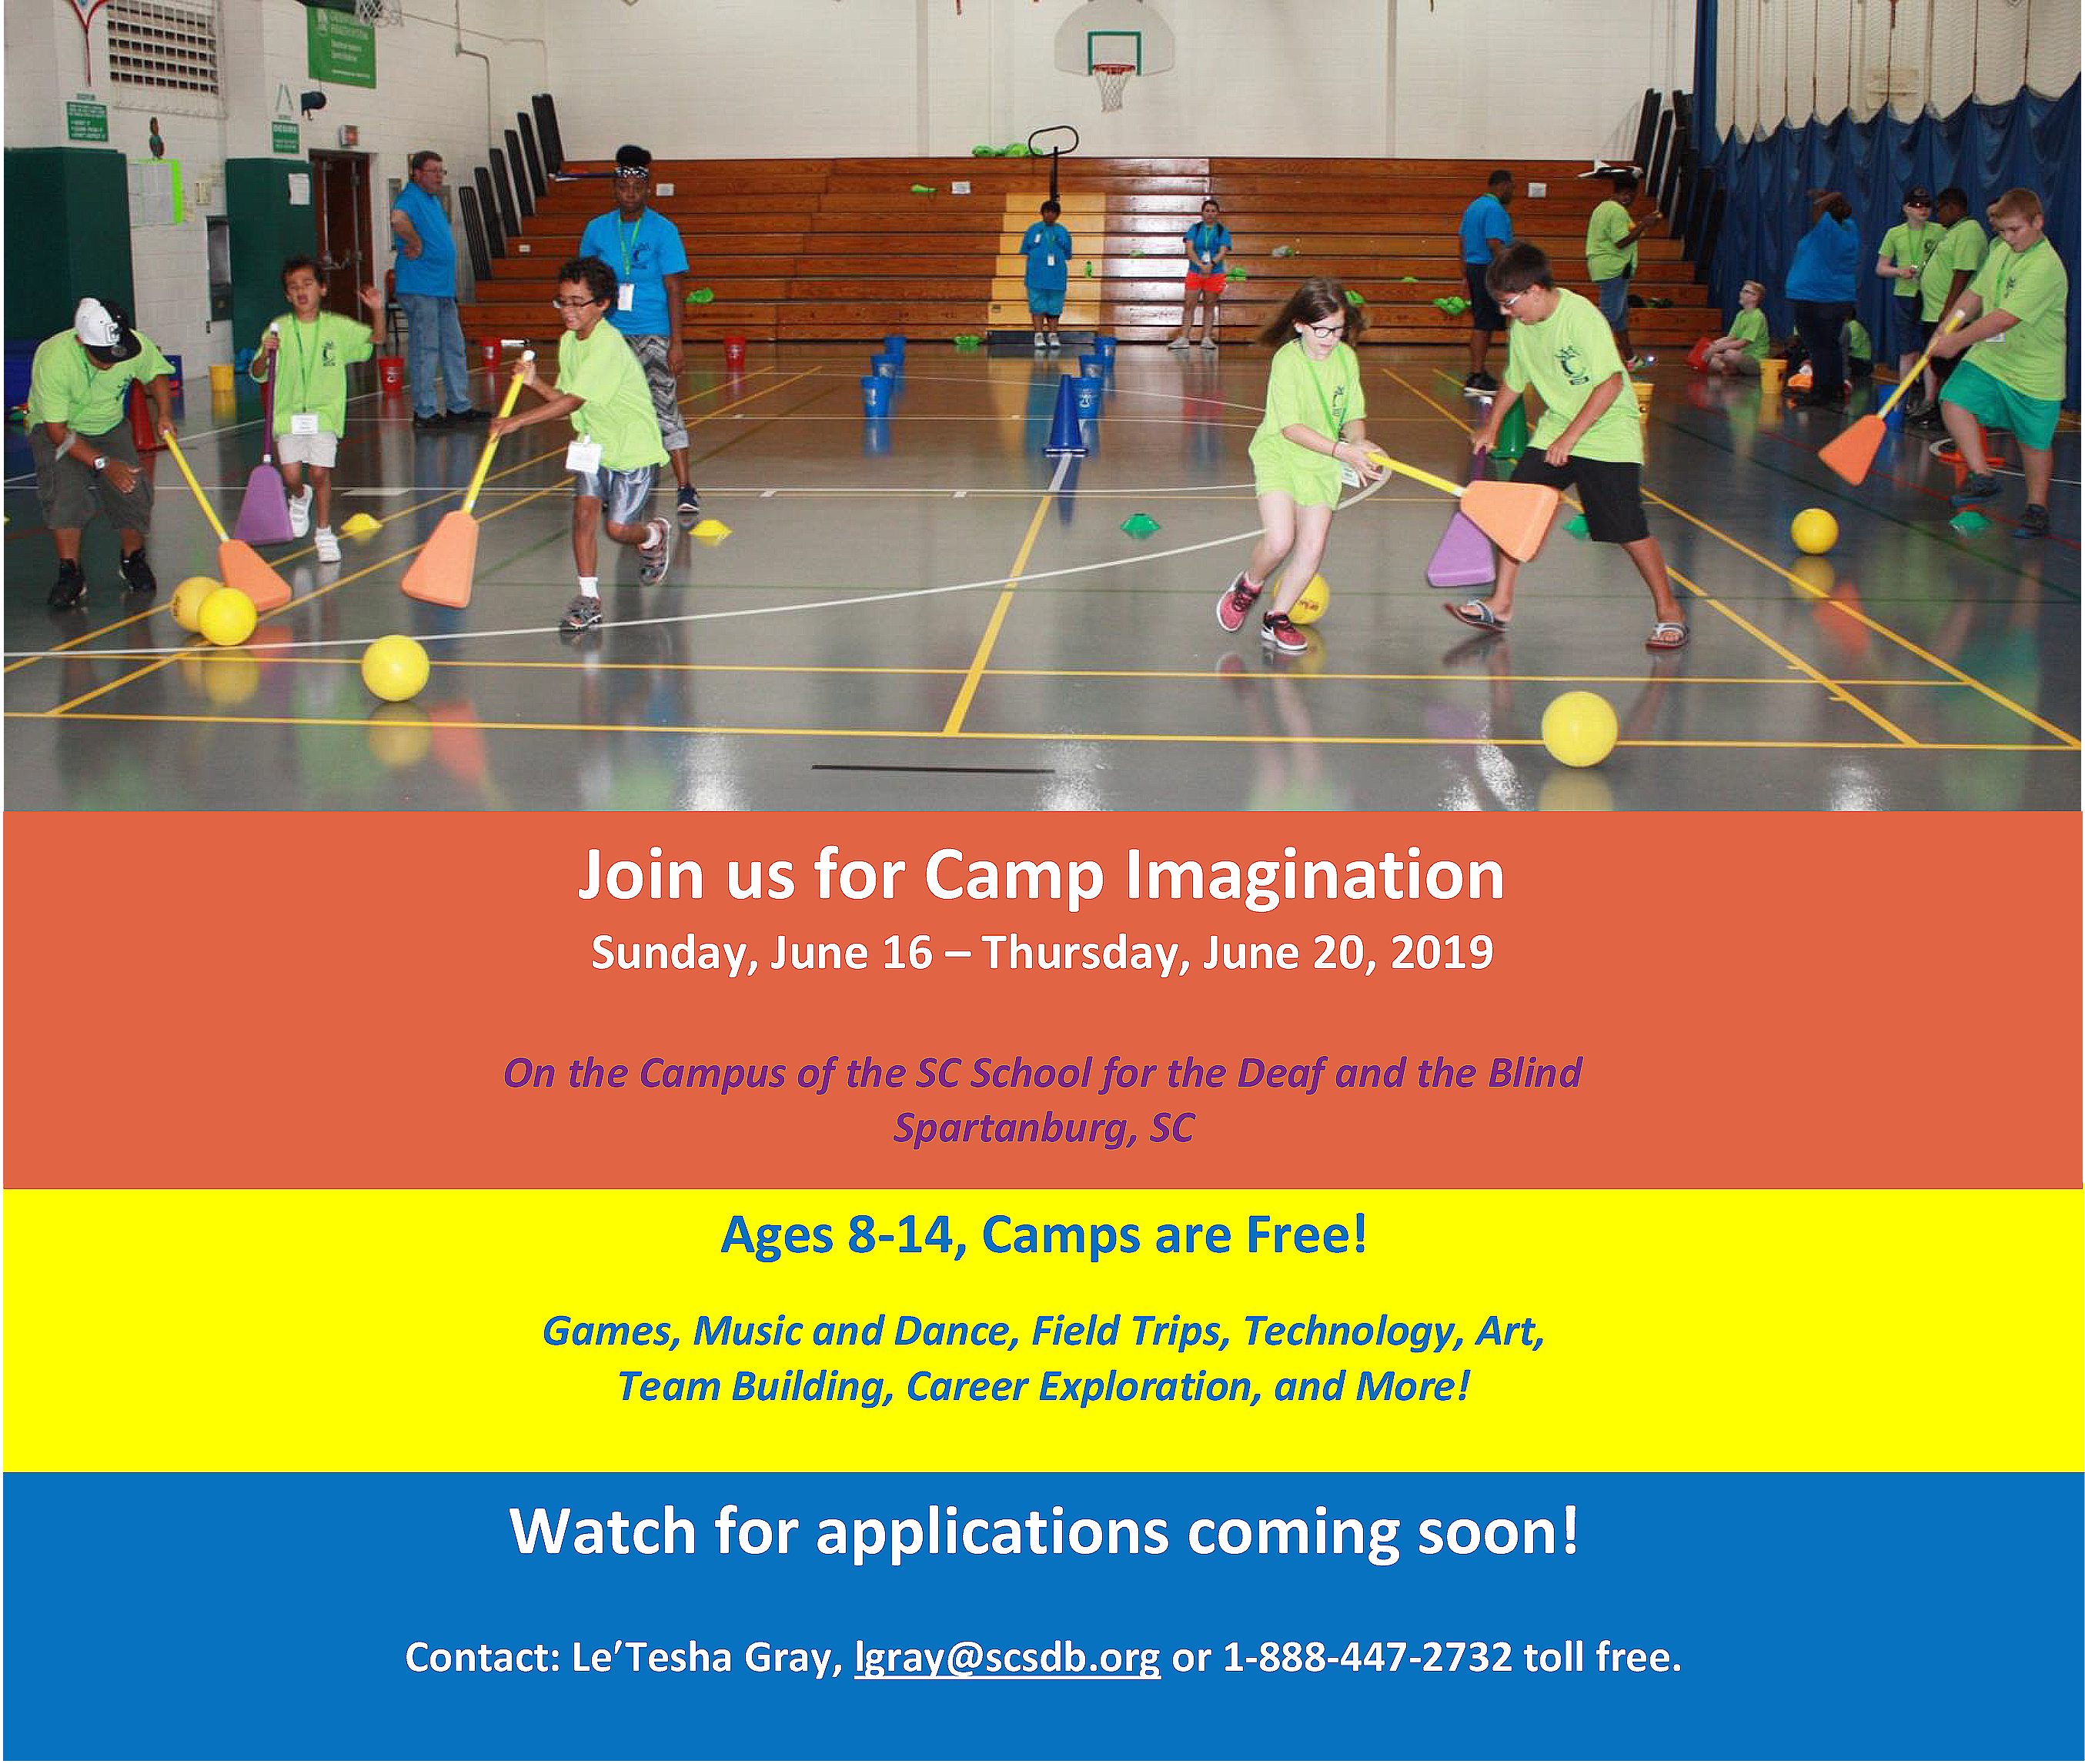 Join us for Camp Imagination Sunday, June 16 - Thursday, June 20, 2019 On the Campus of the SC School for the Deaf and the Blind Spartanburg, SC Ages 8-14, Camps are Free! Games, Music and Dance, Field Trips, Technology, Art, Team Building, Career Exploration, and More! Watch for applications coming soon! Contact Le'Tesha Gray, lgray@scsdb.org or 1-888-447-2732 toll free.